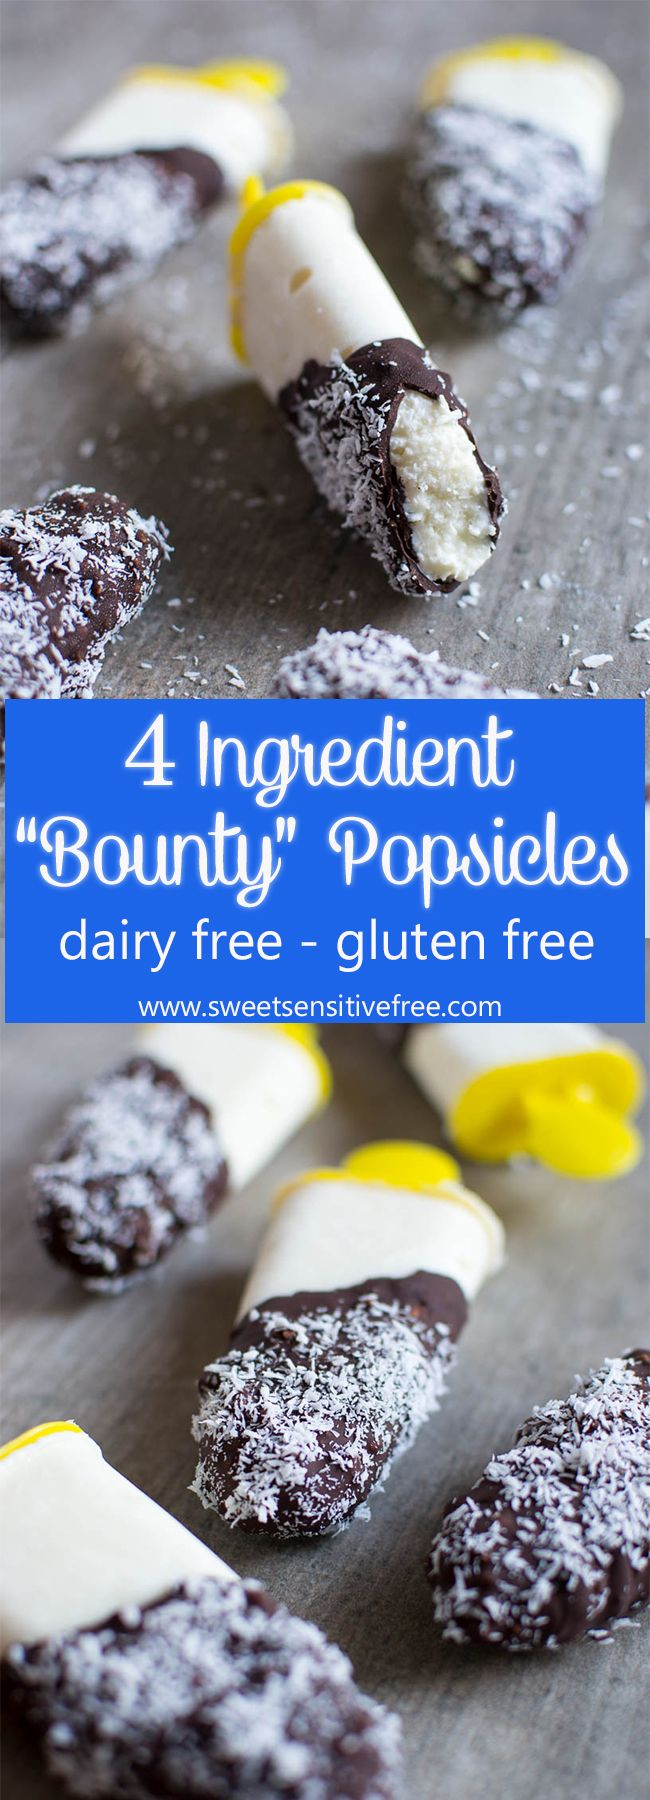 4 Ingredients Easy Homemade Bounty Popsicles with Coconut Yogurt, naturally dairy free and perfect for the hot summer days